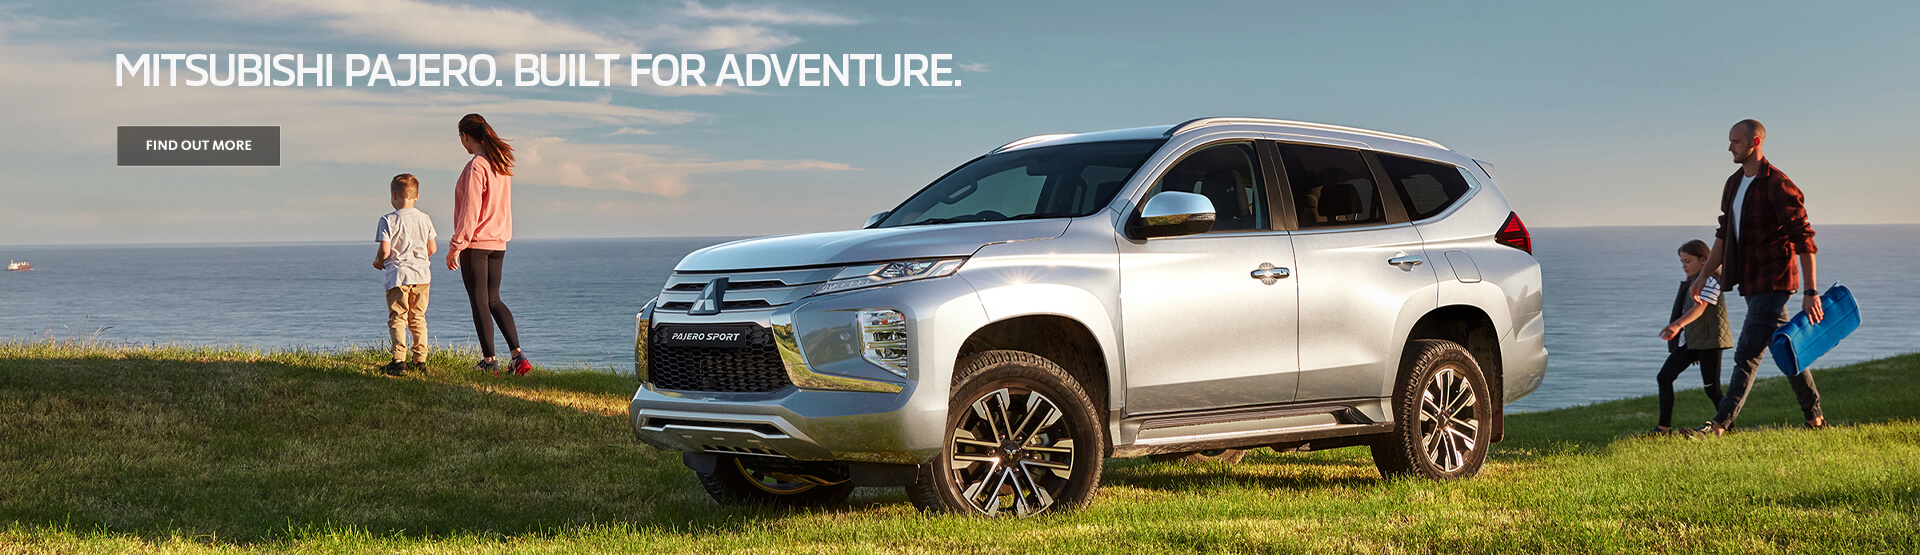 Elevate your adventure with the Mitsubishi Pajero Sport. Book a test drive today.